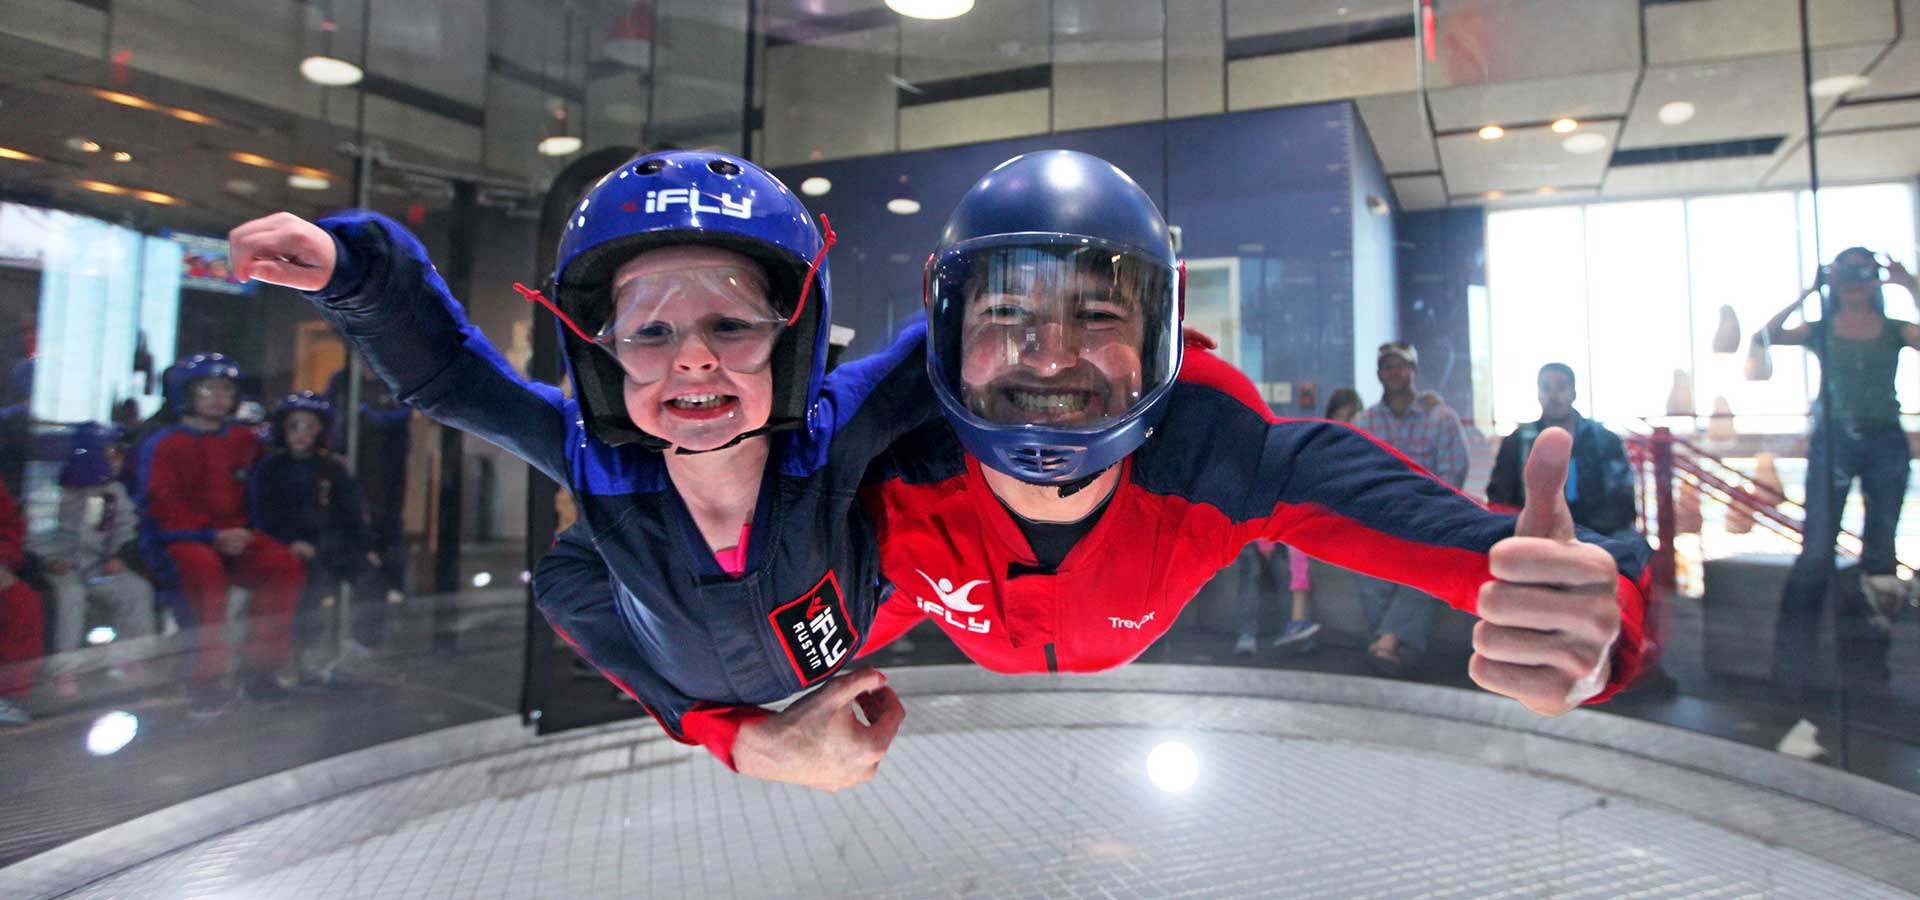 Jet Boating in Queenstown and Indoor skydiving activities